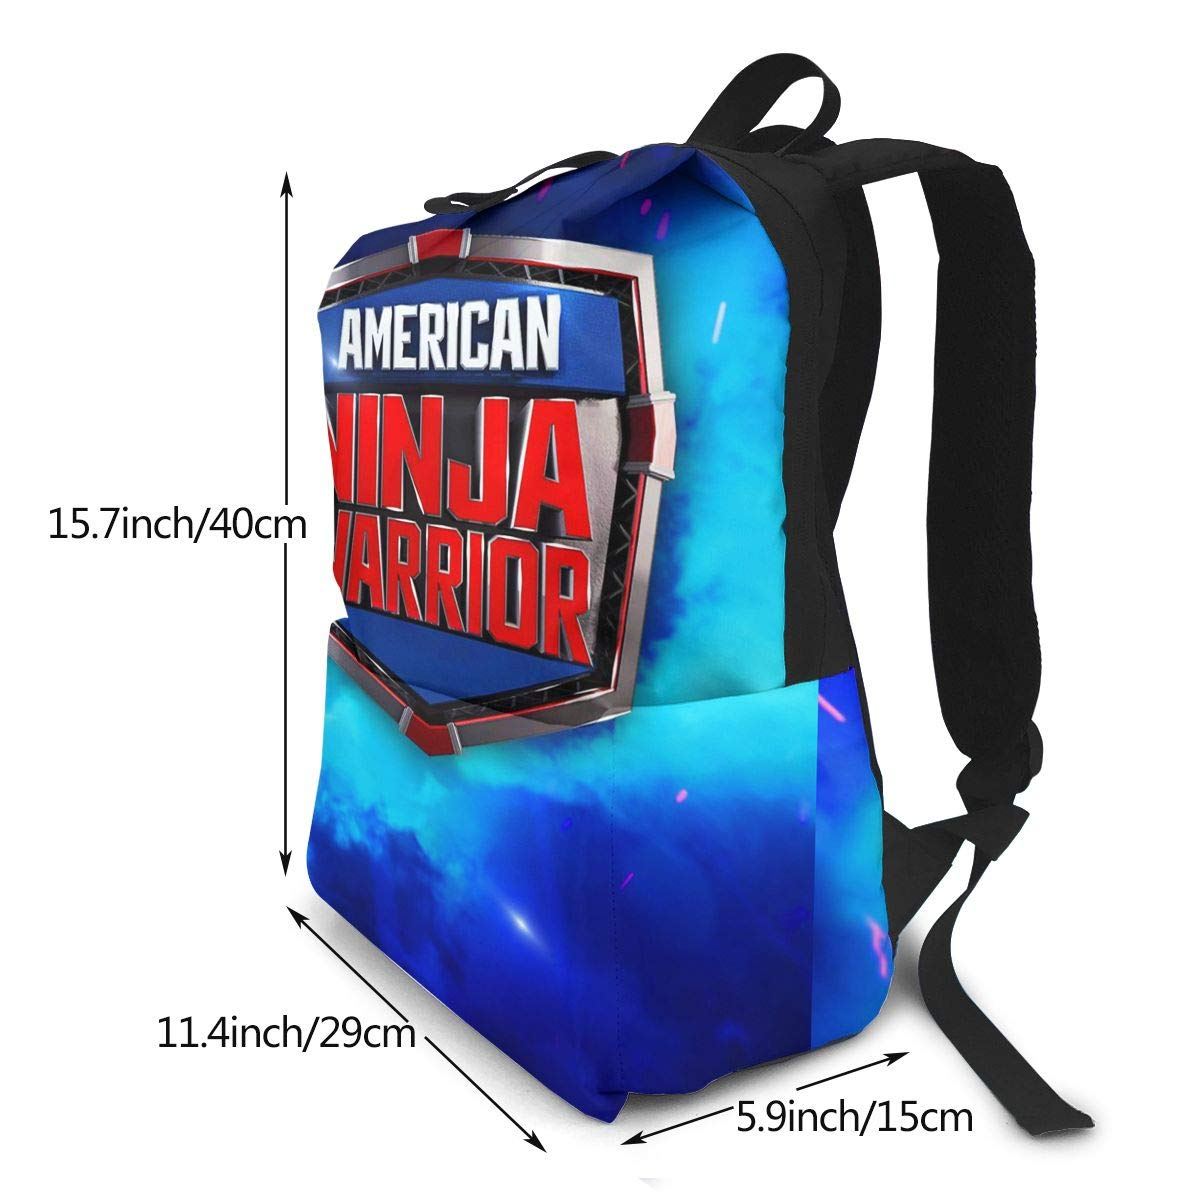 Amazon.com: PcldLoeE-00 Backpack American Ninja Warrior ...